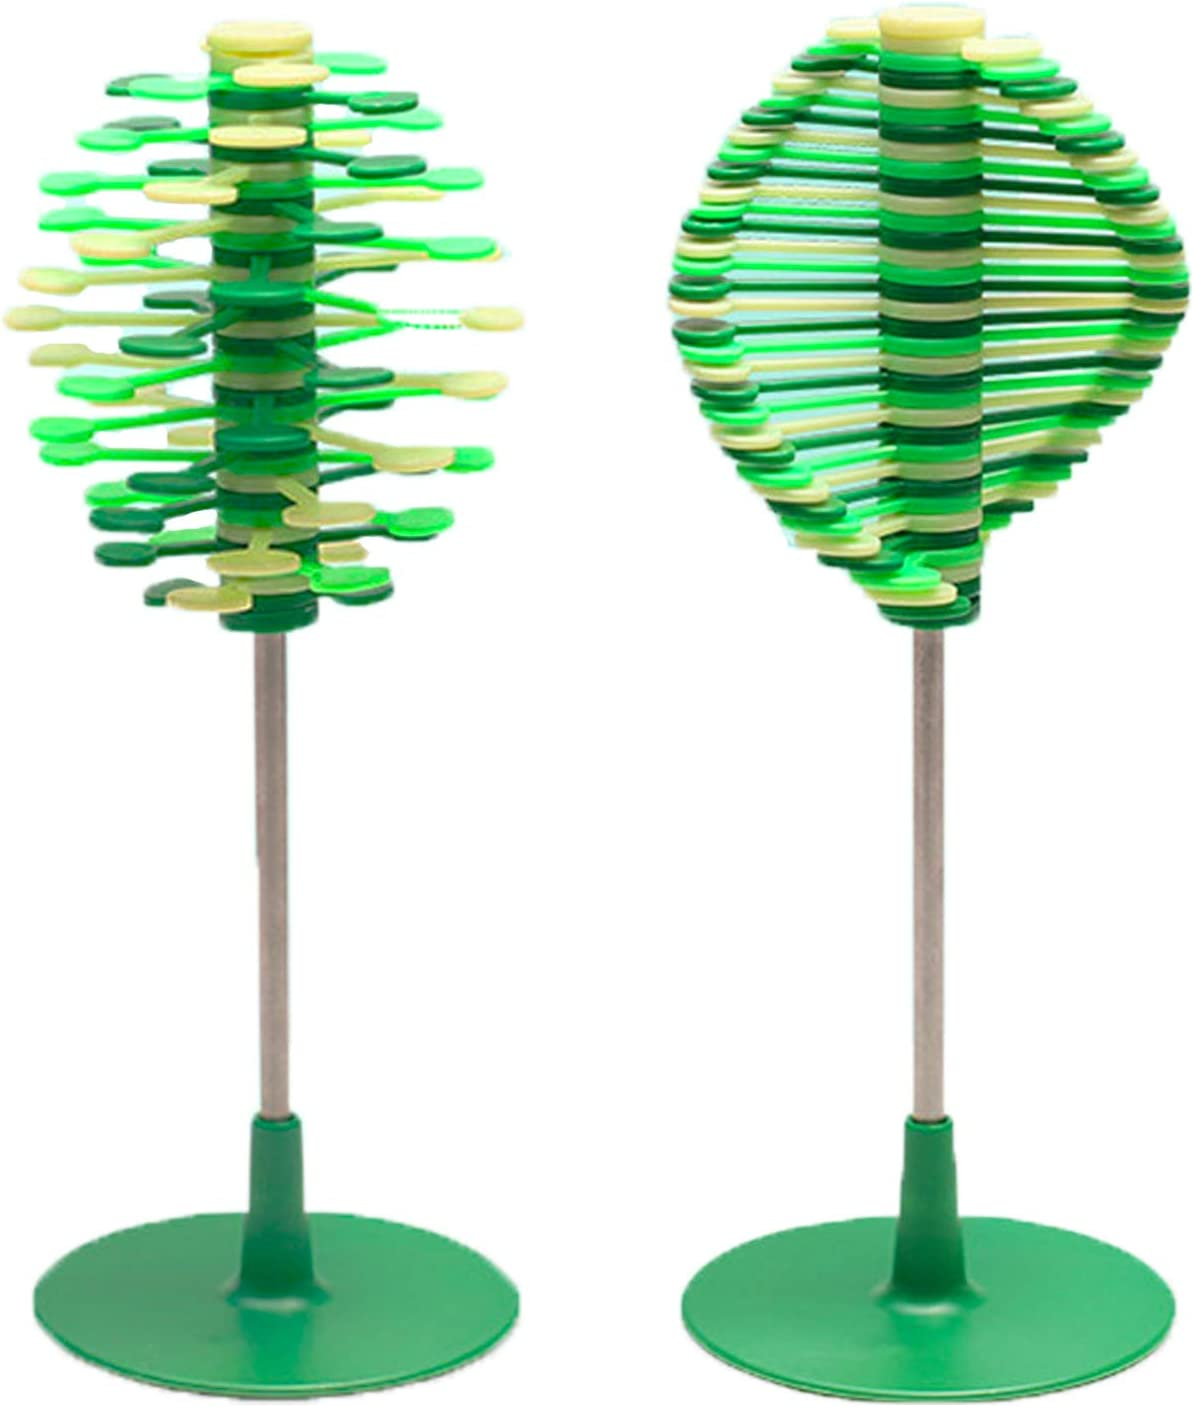 Plastic Office Home Toys Helicone Stress Relief Toy - Leaf-Shaped Display Stand Holder Decoration for Desk Top - Manipulable Playable Display Art Accessory Office Fidget Gadget Gift for Christmas,Fath